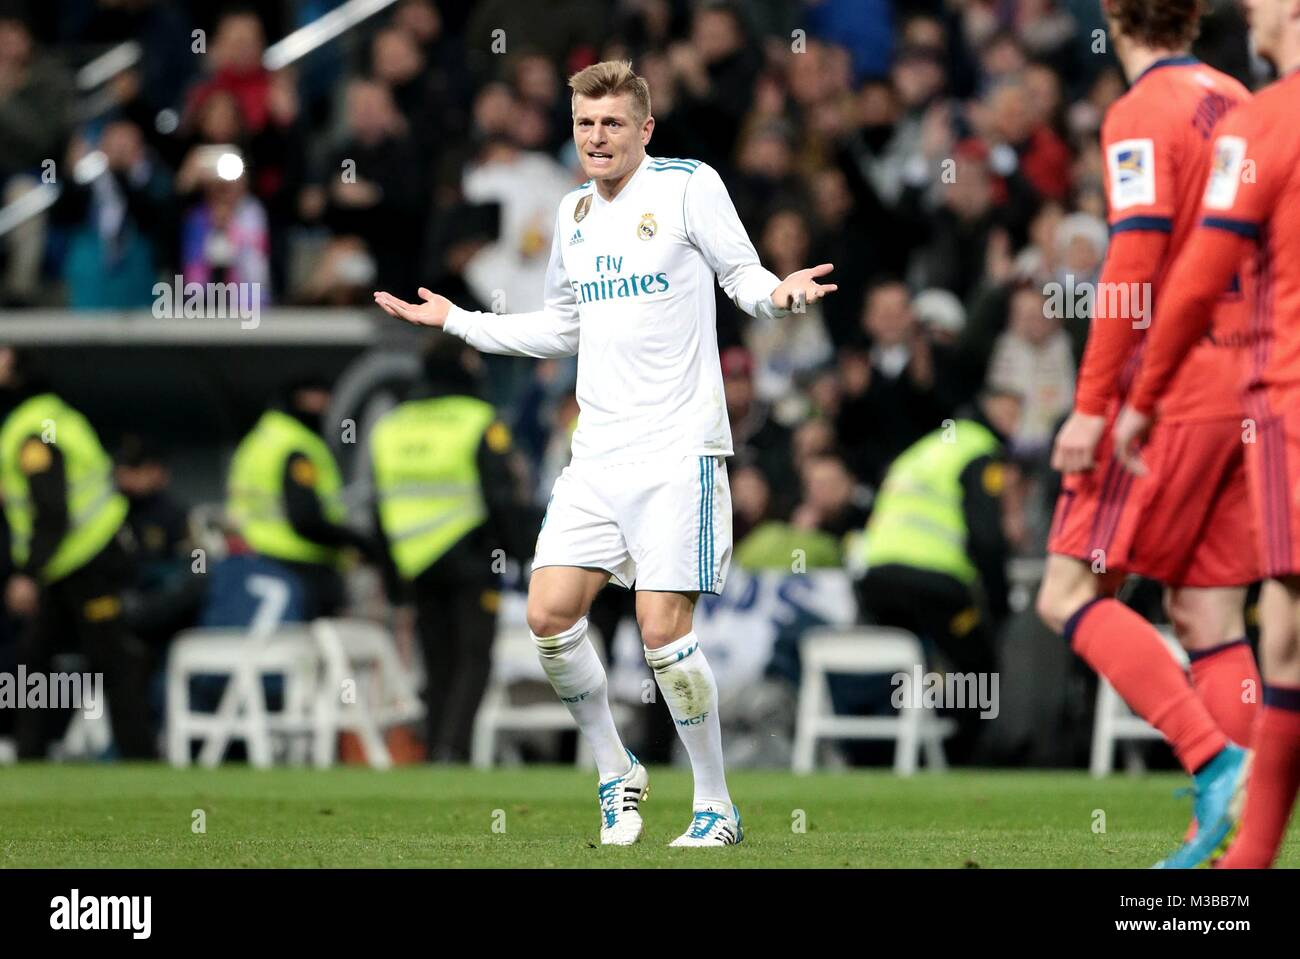 Madrid, Spain. 10th Feb, 2018. Real Madrid's Tony Kroos reacts during a Spanish league match between Real Madrid - Stock Image